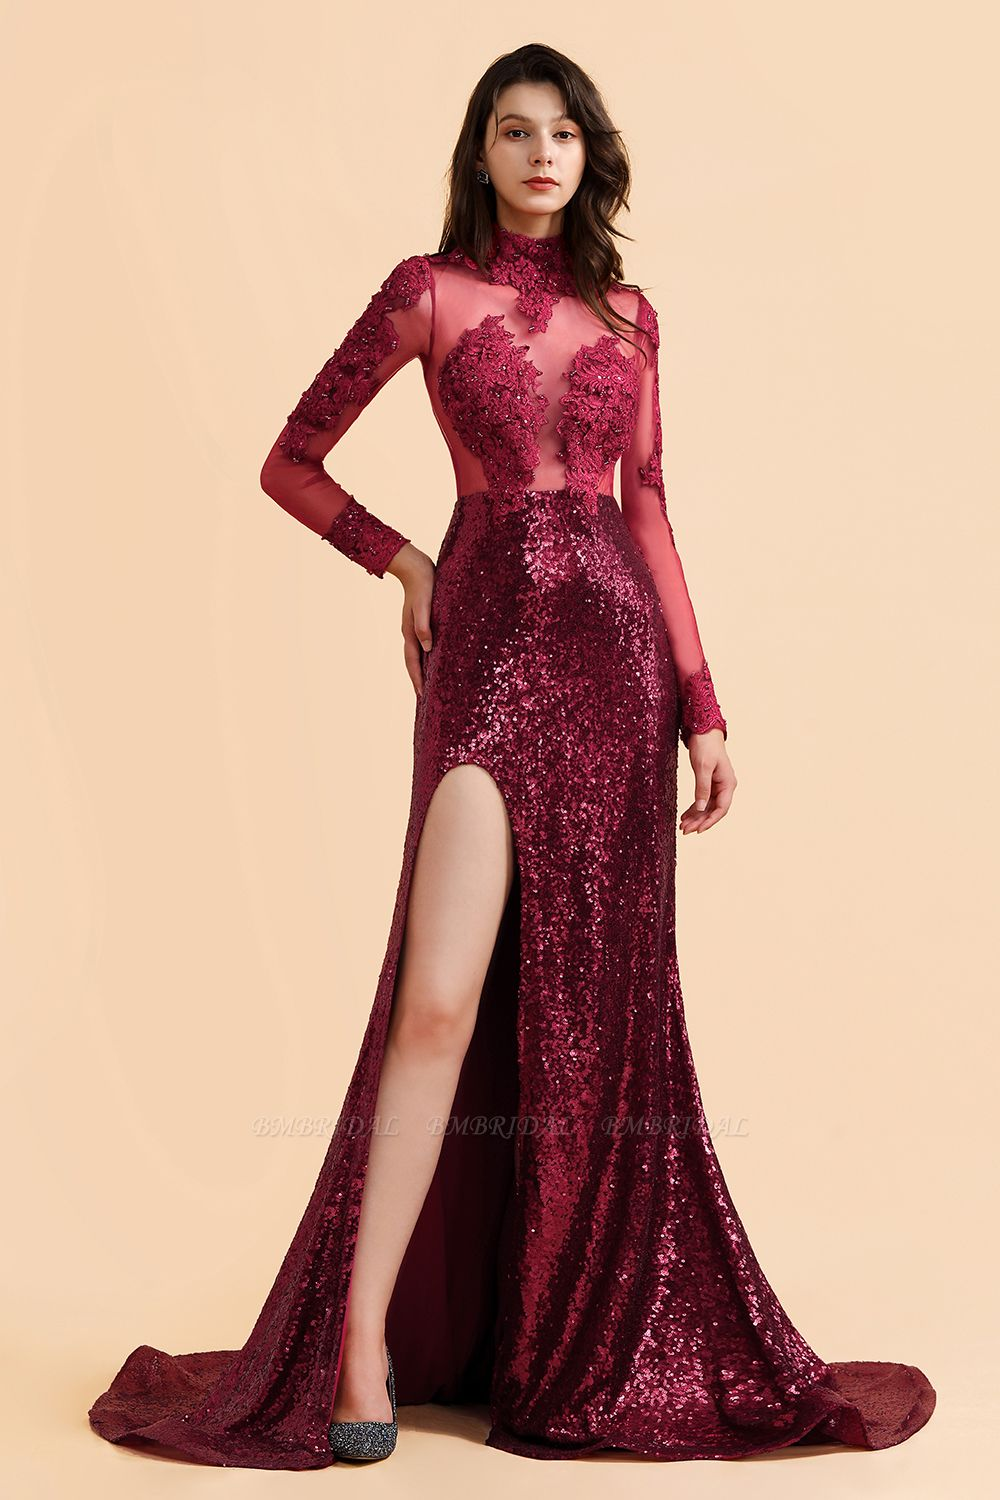 BMbridal Sexy High-Neck Burgundy Sequined Slit Prom Dresses Long Sleeves Appliques Backless Formal Dress with Sheer Top